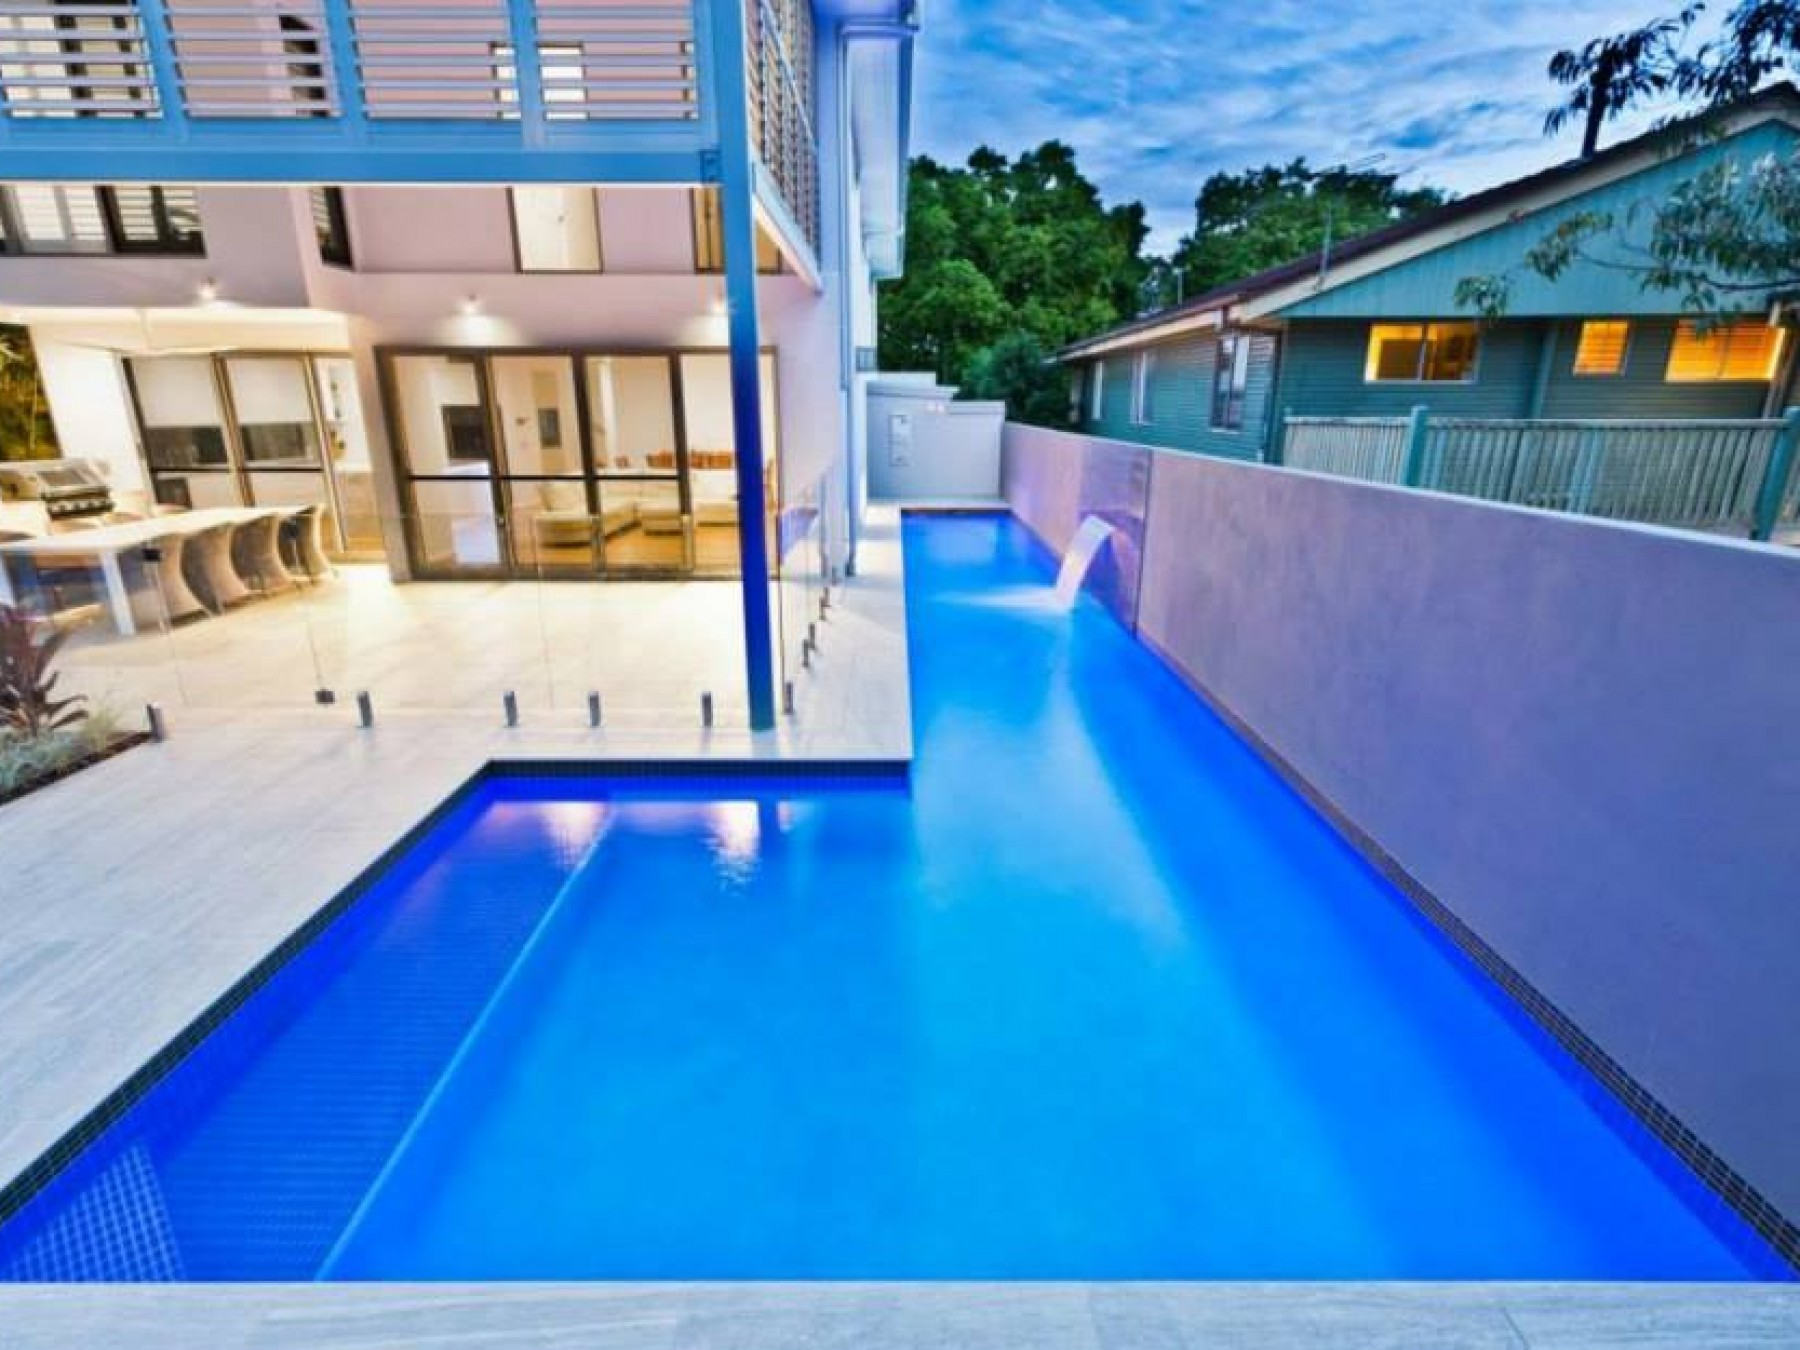 Selling or Leasing a pool in Ascot